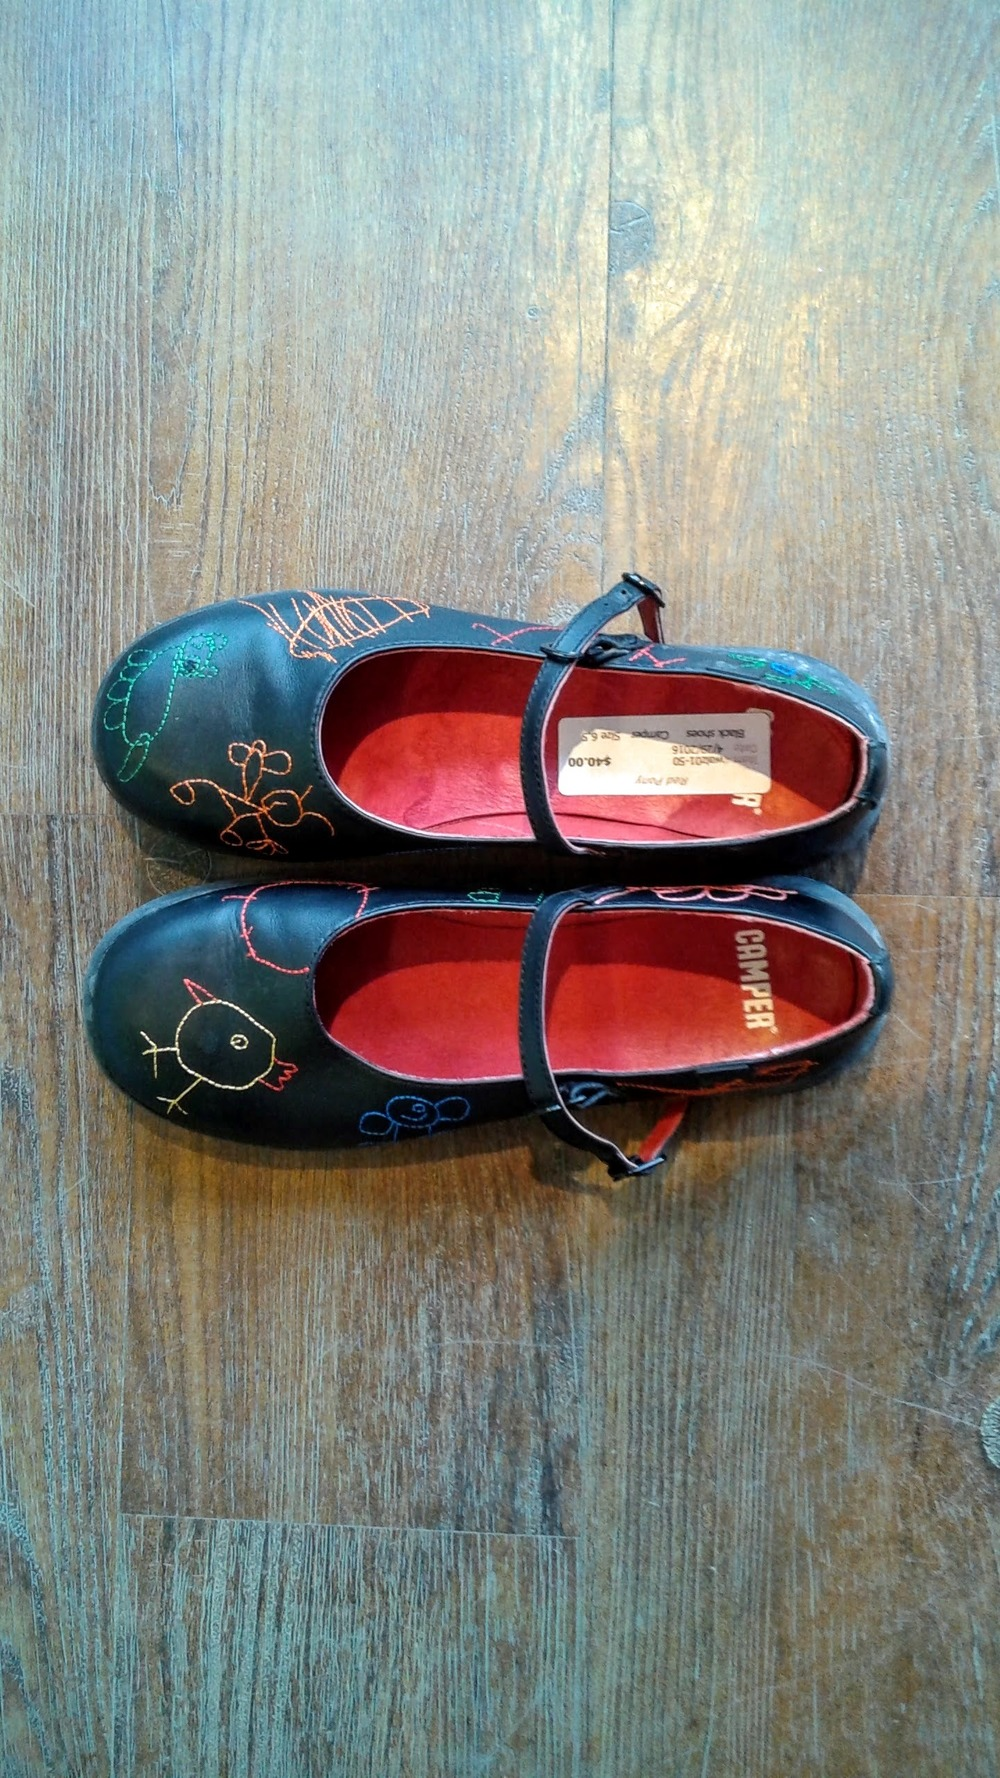 Camper shoes, S6.5, $40